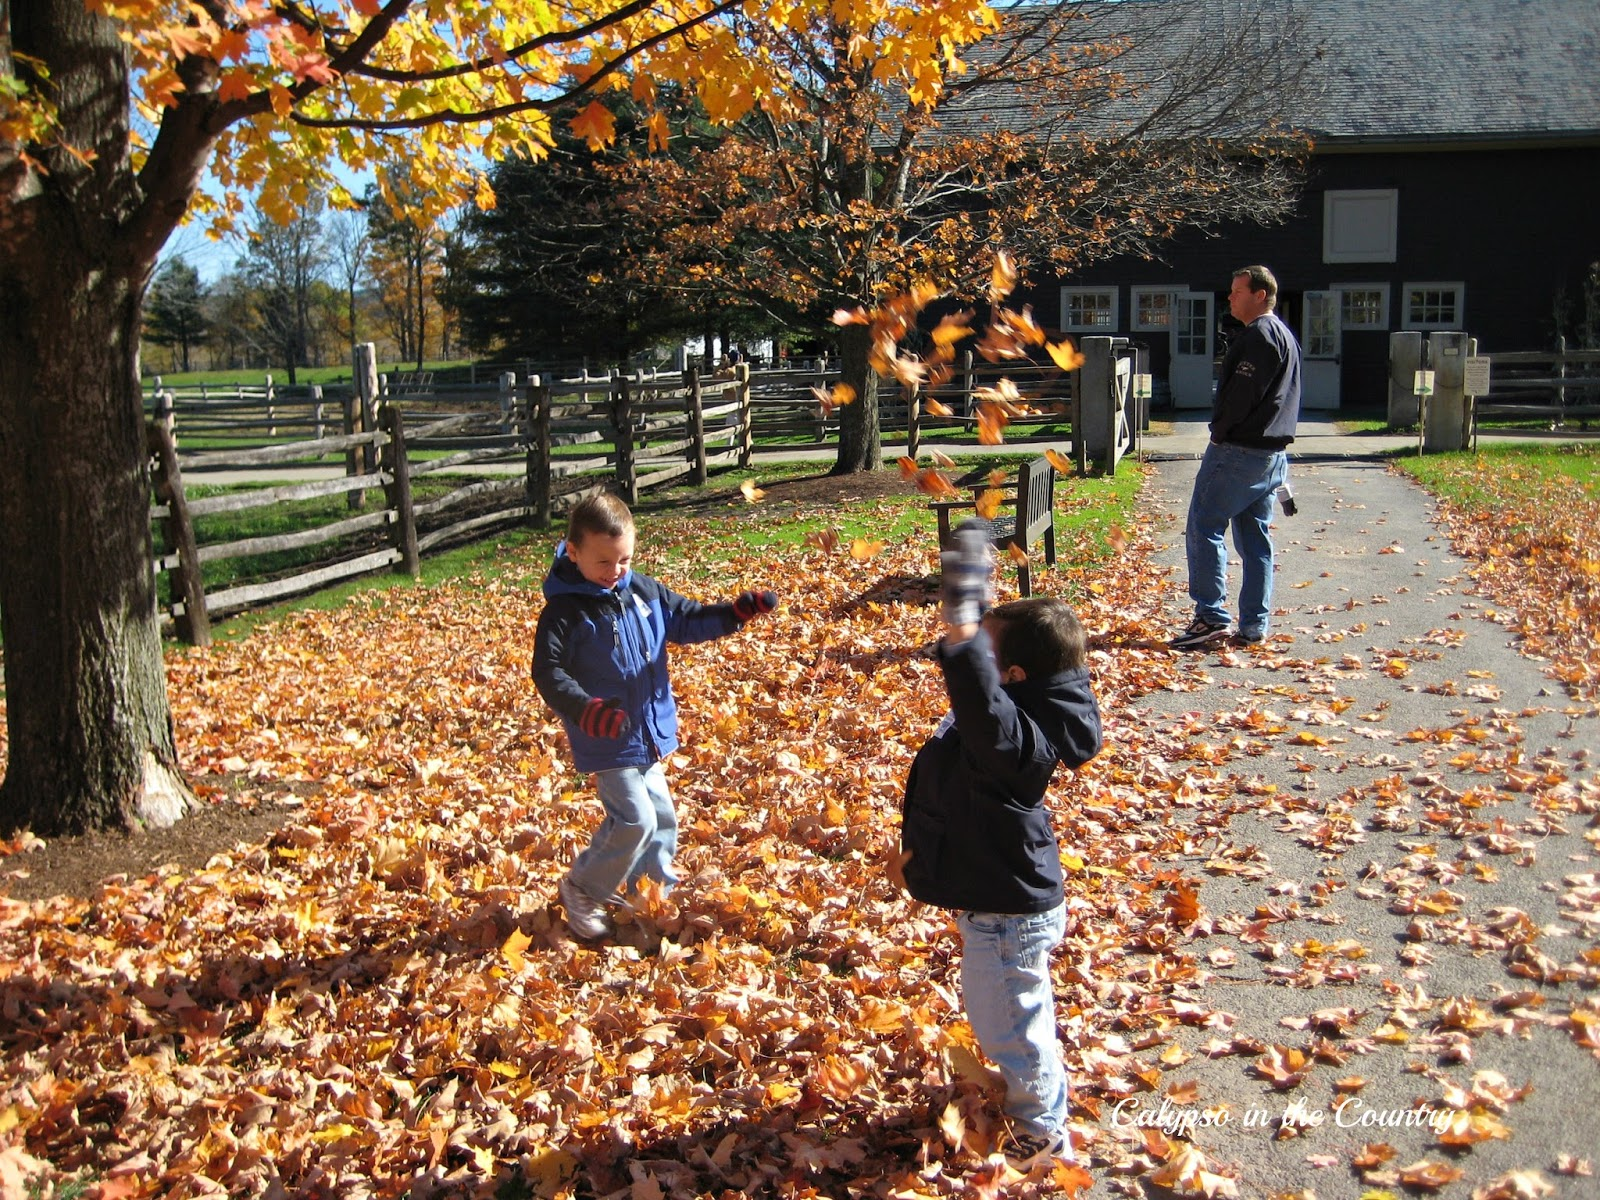 Boys playing in the fall leaves